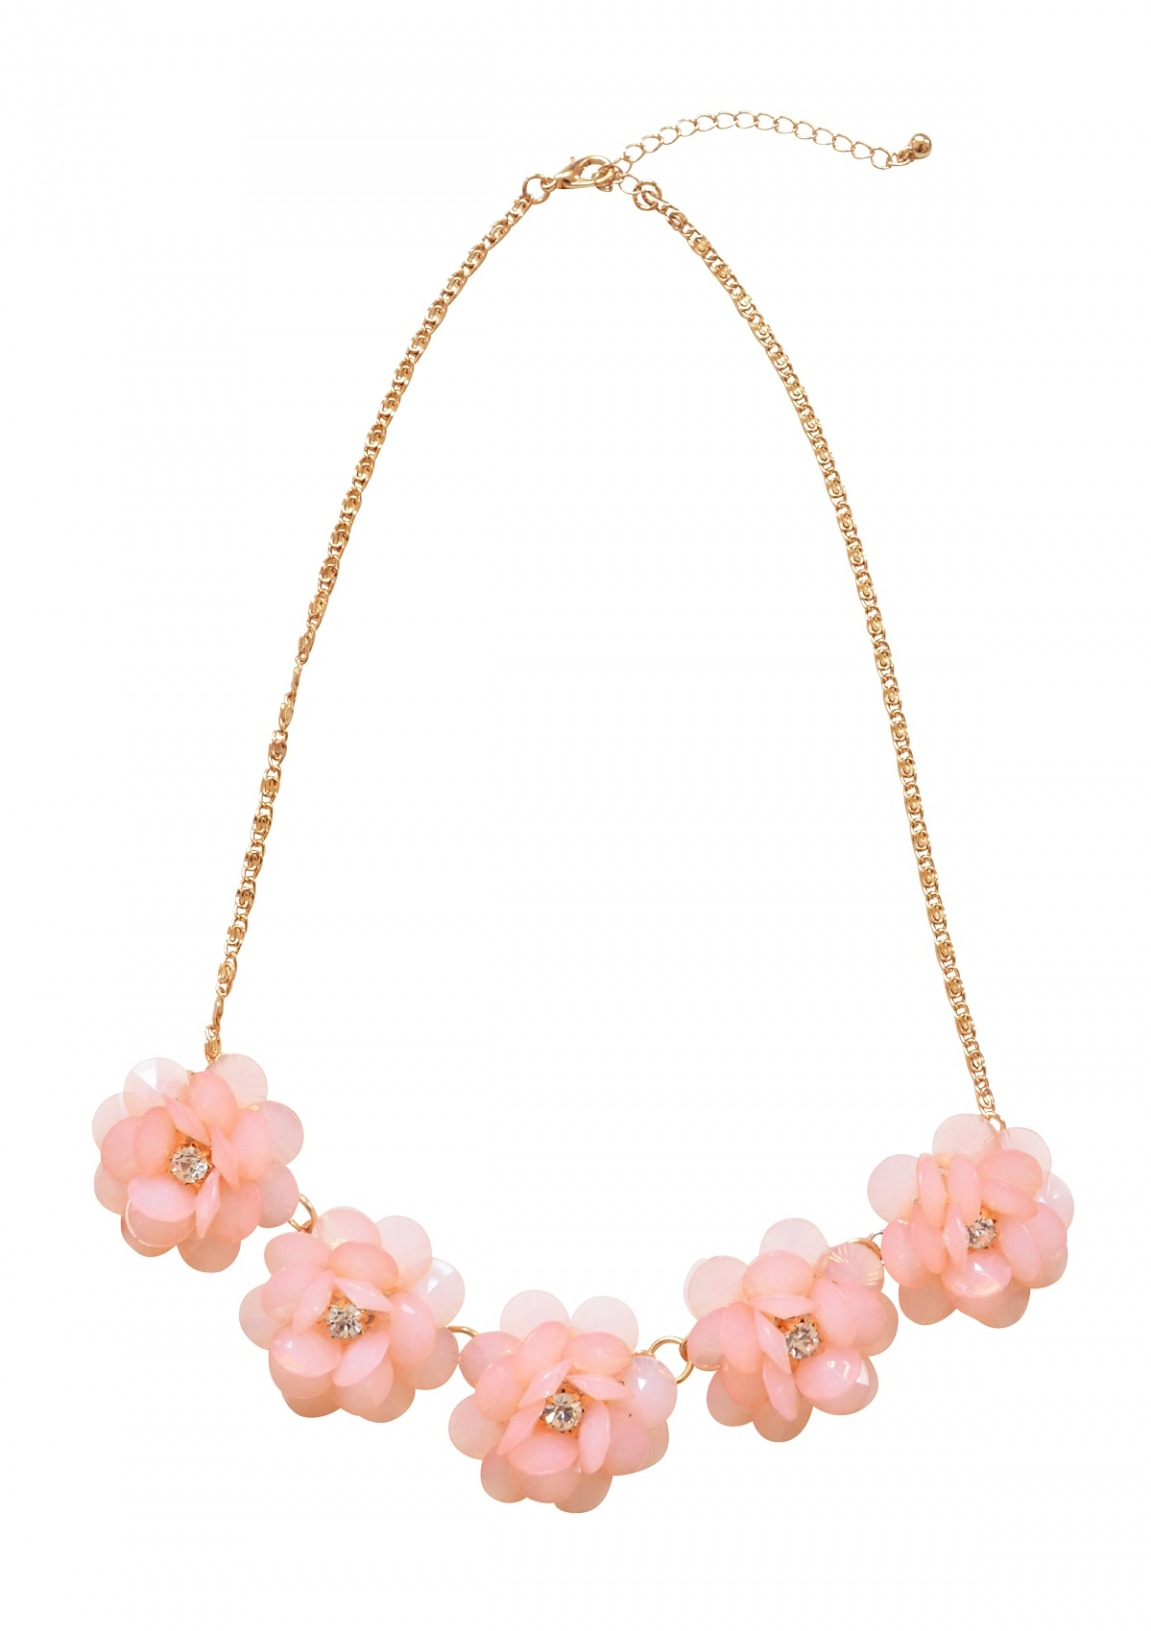 Pastel Pink Flower Statement Necklace Happiness Boutique